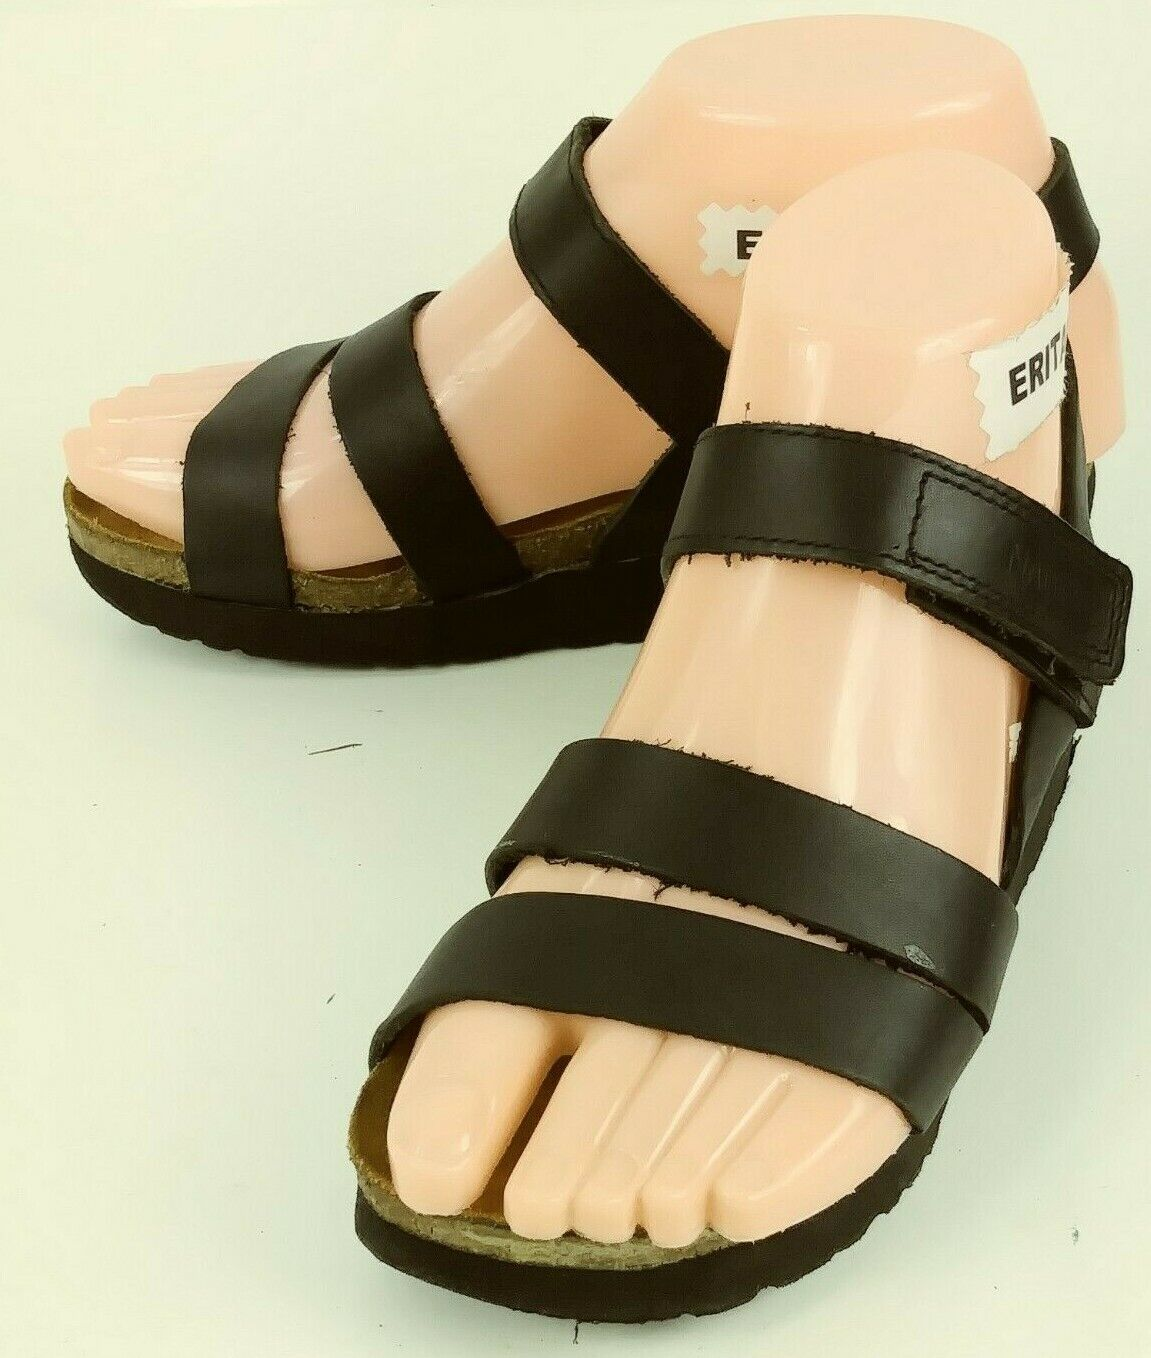 Naot Womens shoes Sandals EU 35 US 4 Black Leather Ankle Strap Wedge 291